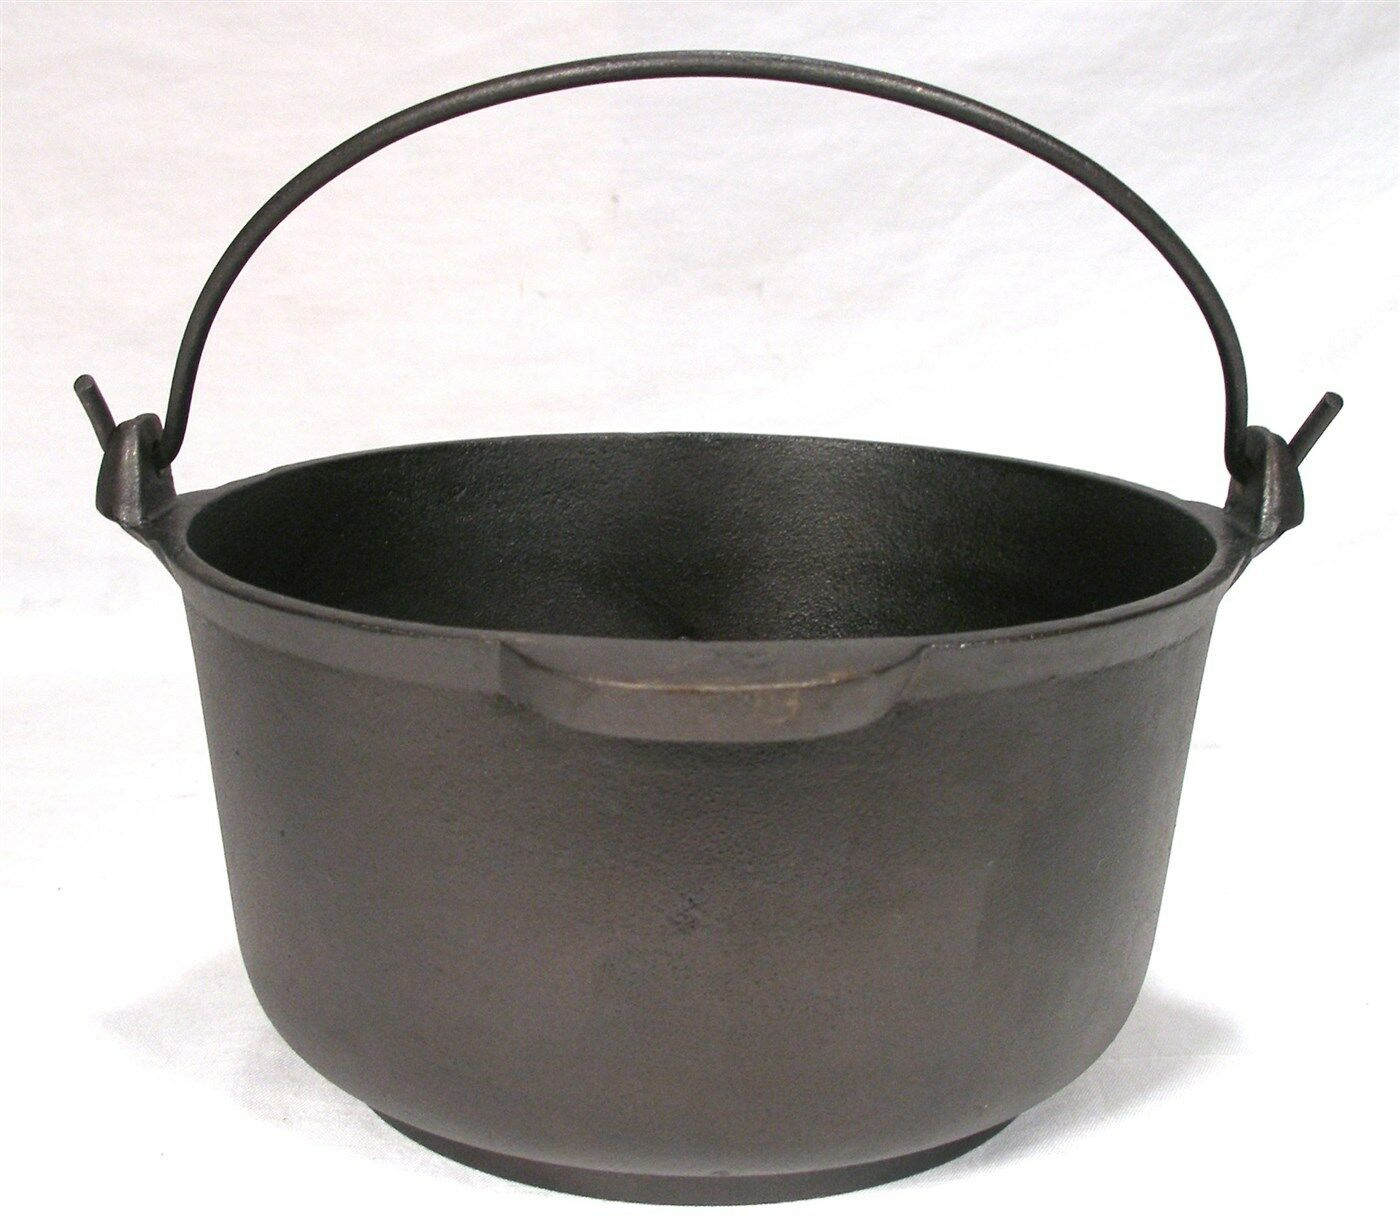 ANTIQUE SMALL MARIETTA CAST IRON CAMP FIRE 2 QT KETTLE CAULDRON GYPSY BEAN POT